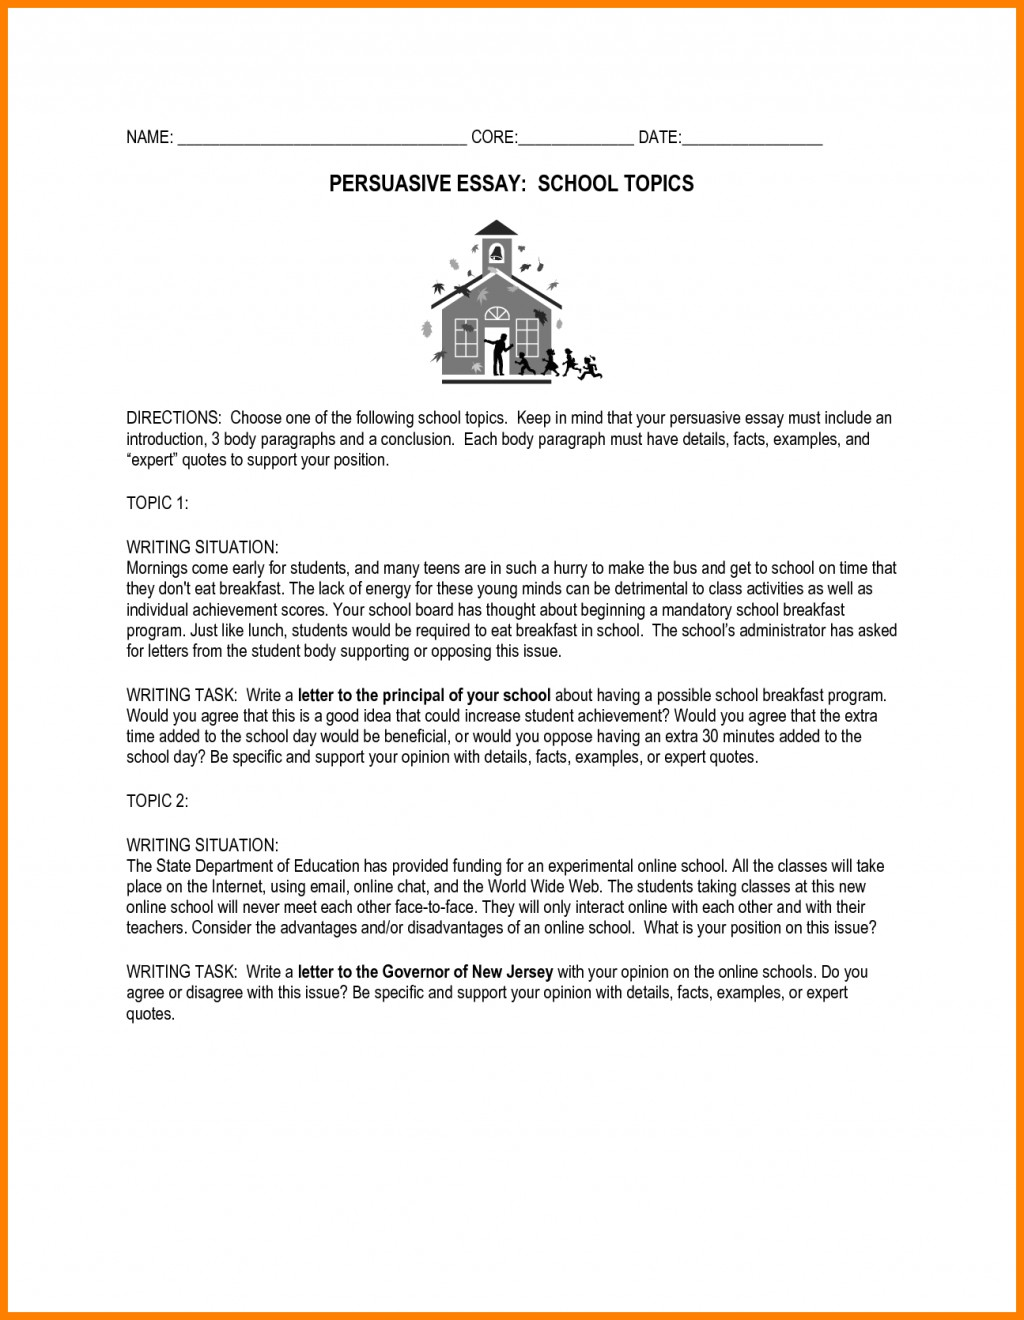 009 Essay Example Persuasive Topics Middle School High Essays Uniforms Examples For Address Ex About Speech Education Rules Issues Uniform Imposing Prompts Argumentative Pdf Large